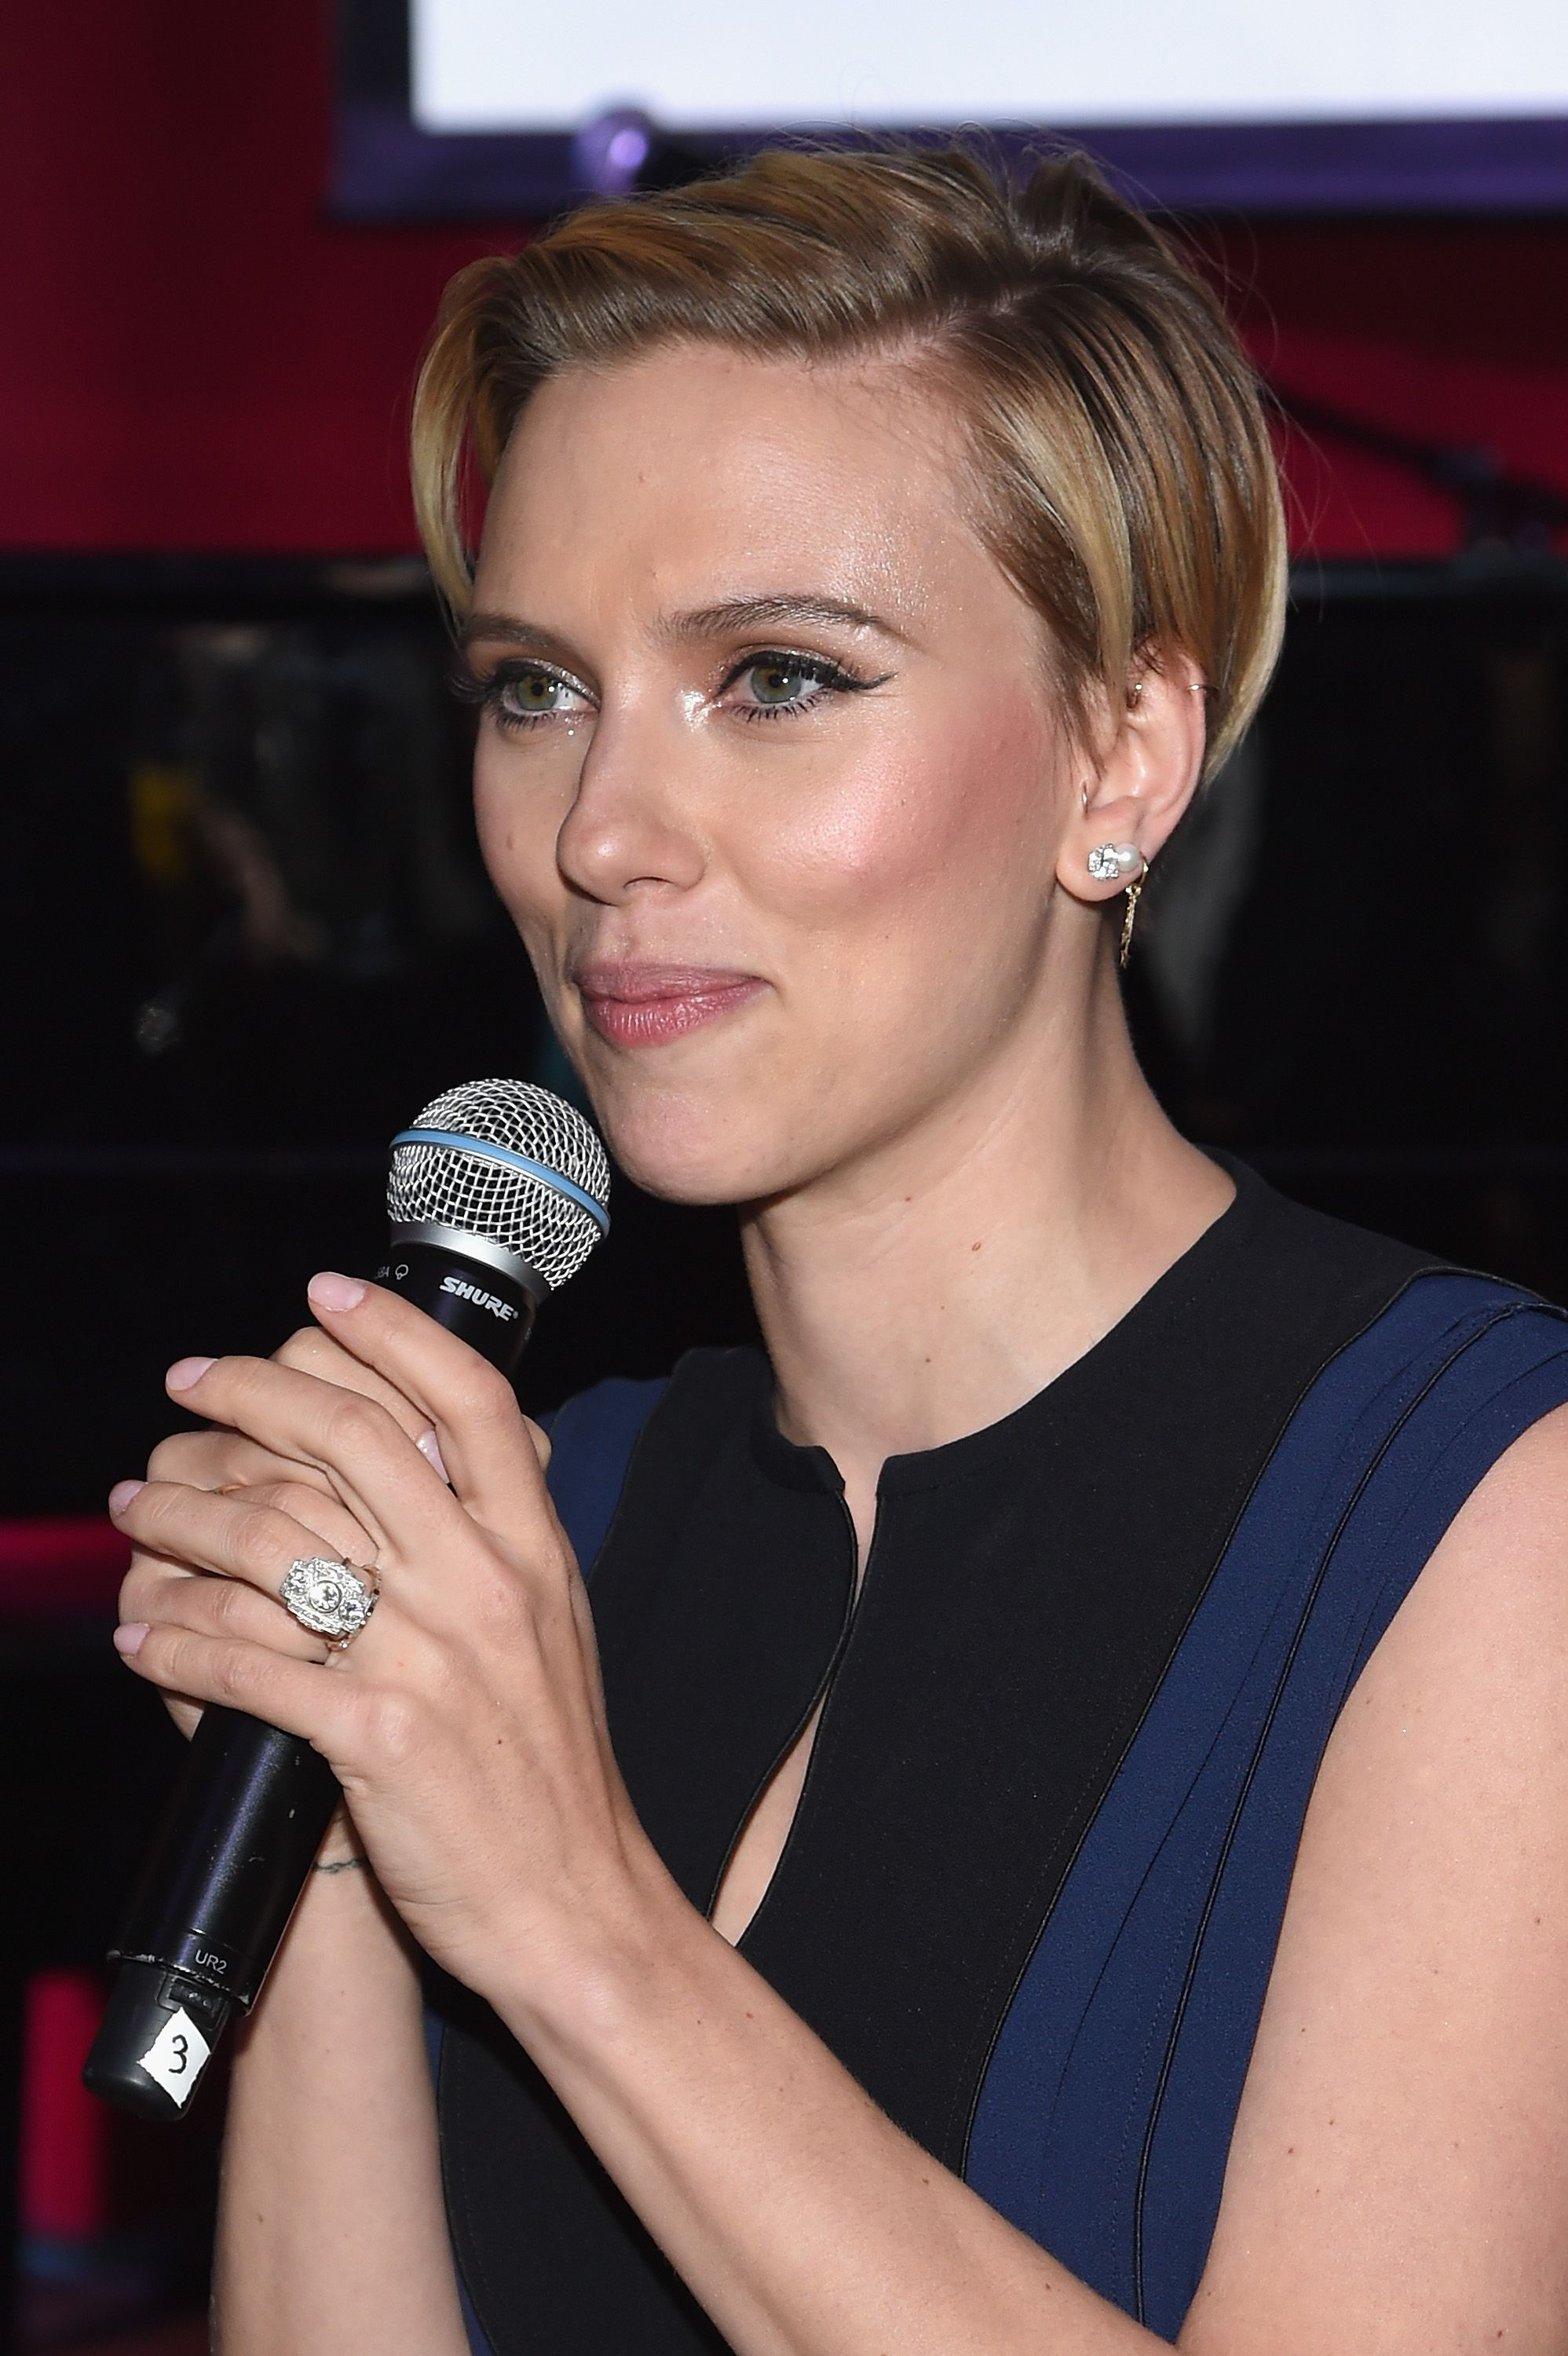 Check Out Newlywed Scarlett Johansson's Wedding Ring